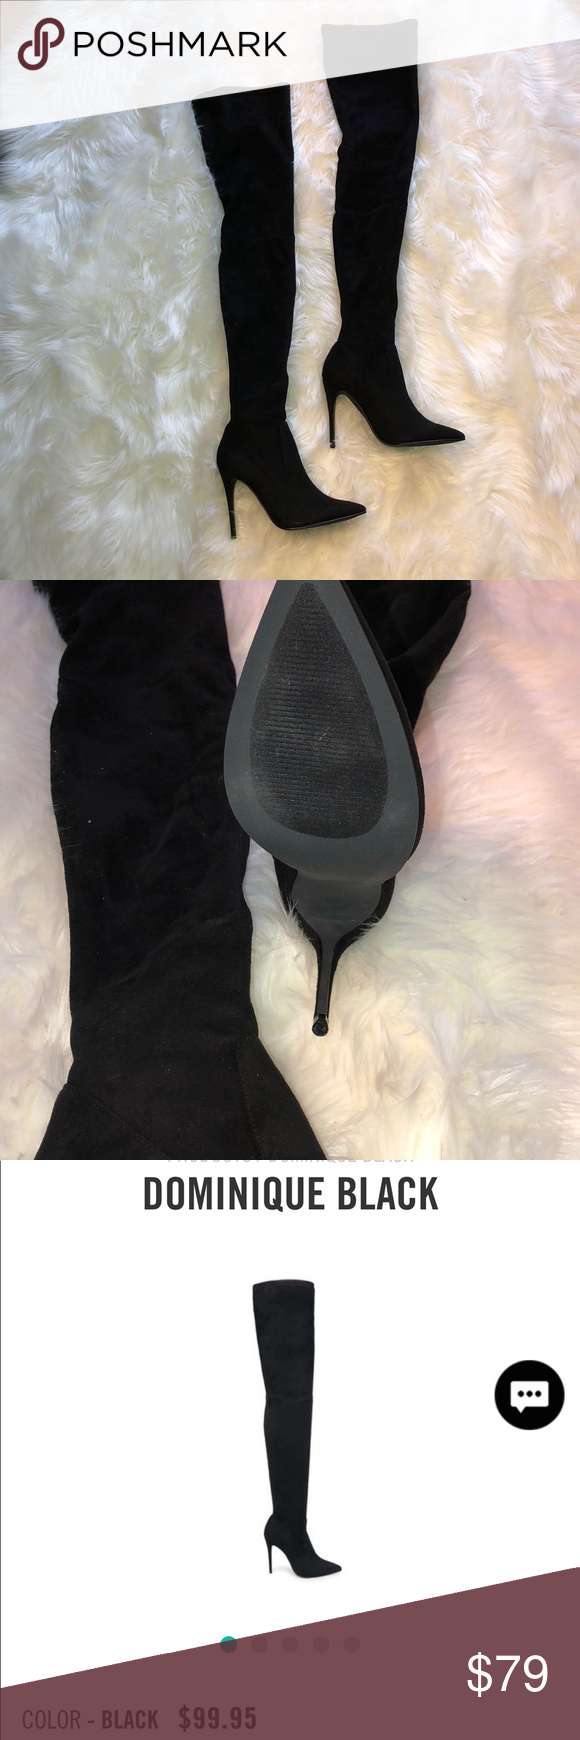 "b49f5bb6416 Steve Madden thigh high "" Dominique "" boots    Seen on Cardi B    Brand new  in box Pull on boot 24inch shaft height 4 inch heel Suede Stiletto heel  Pointed ..."